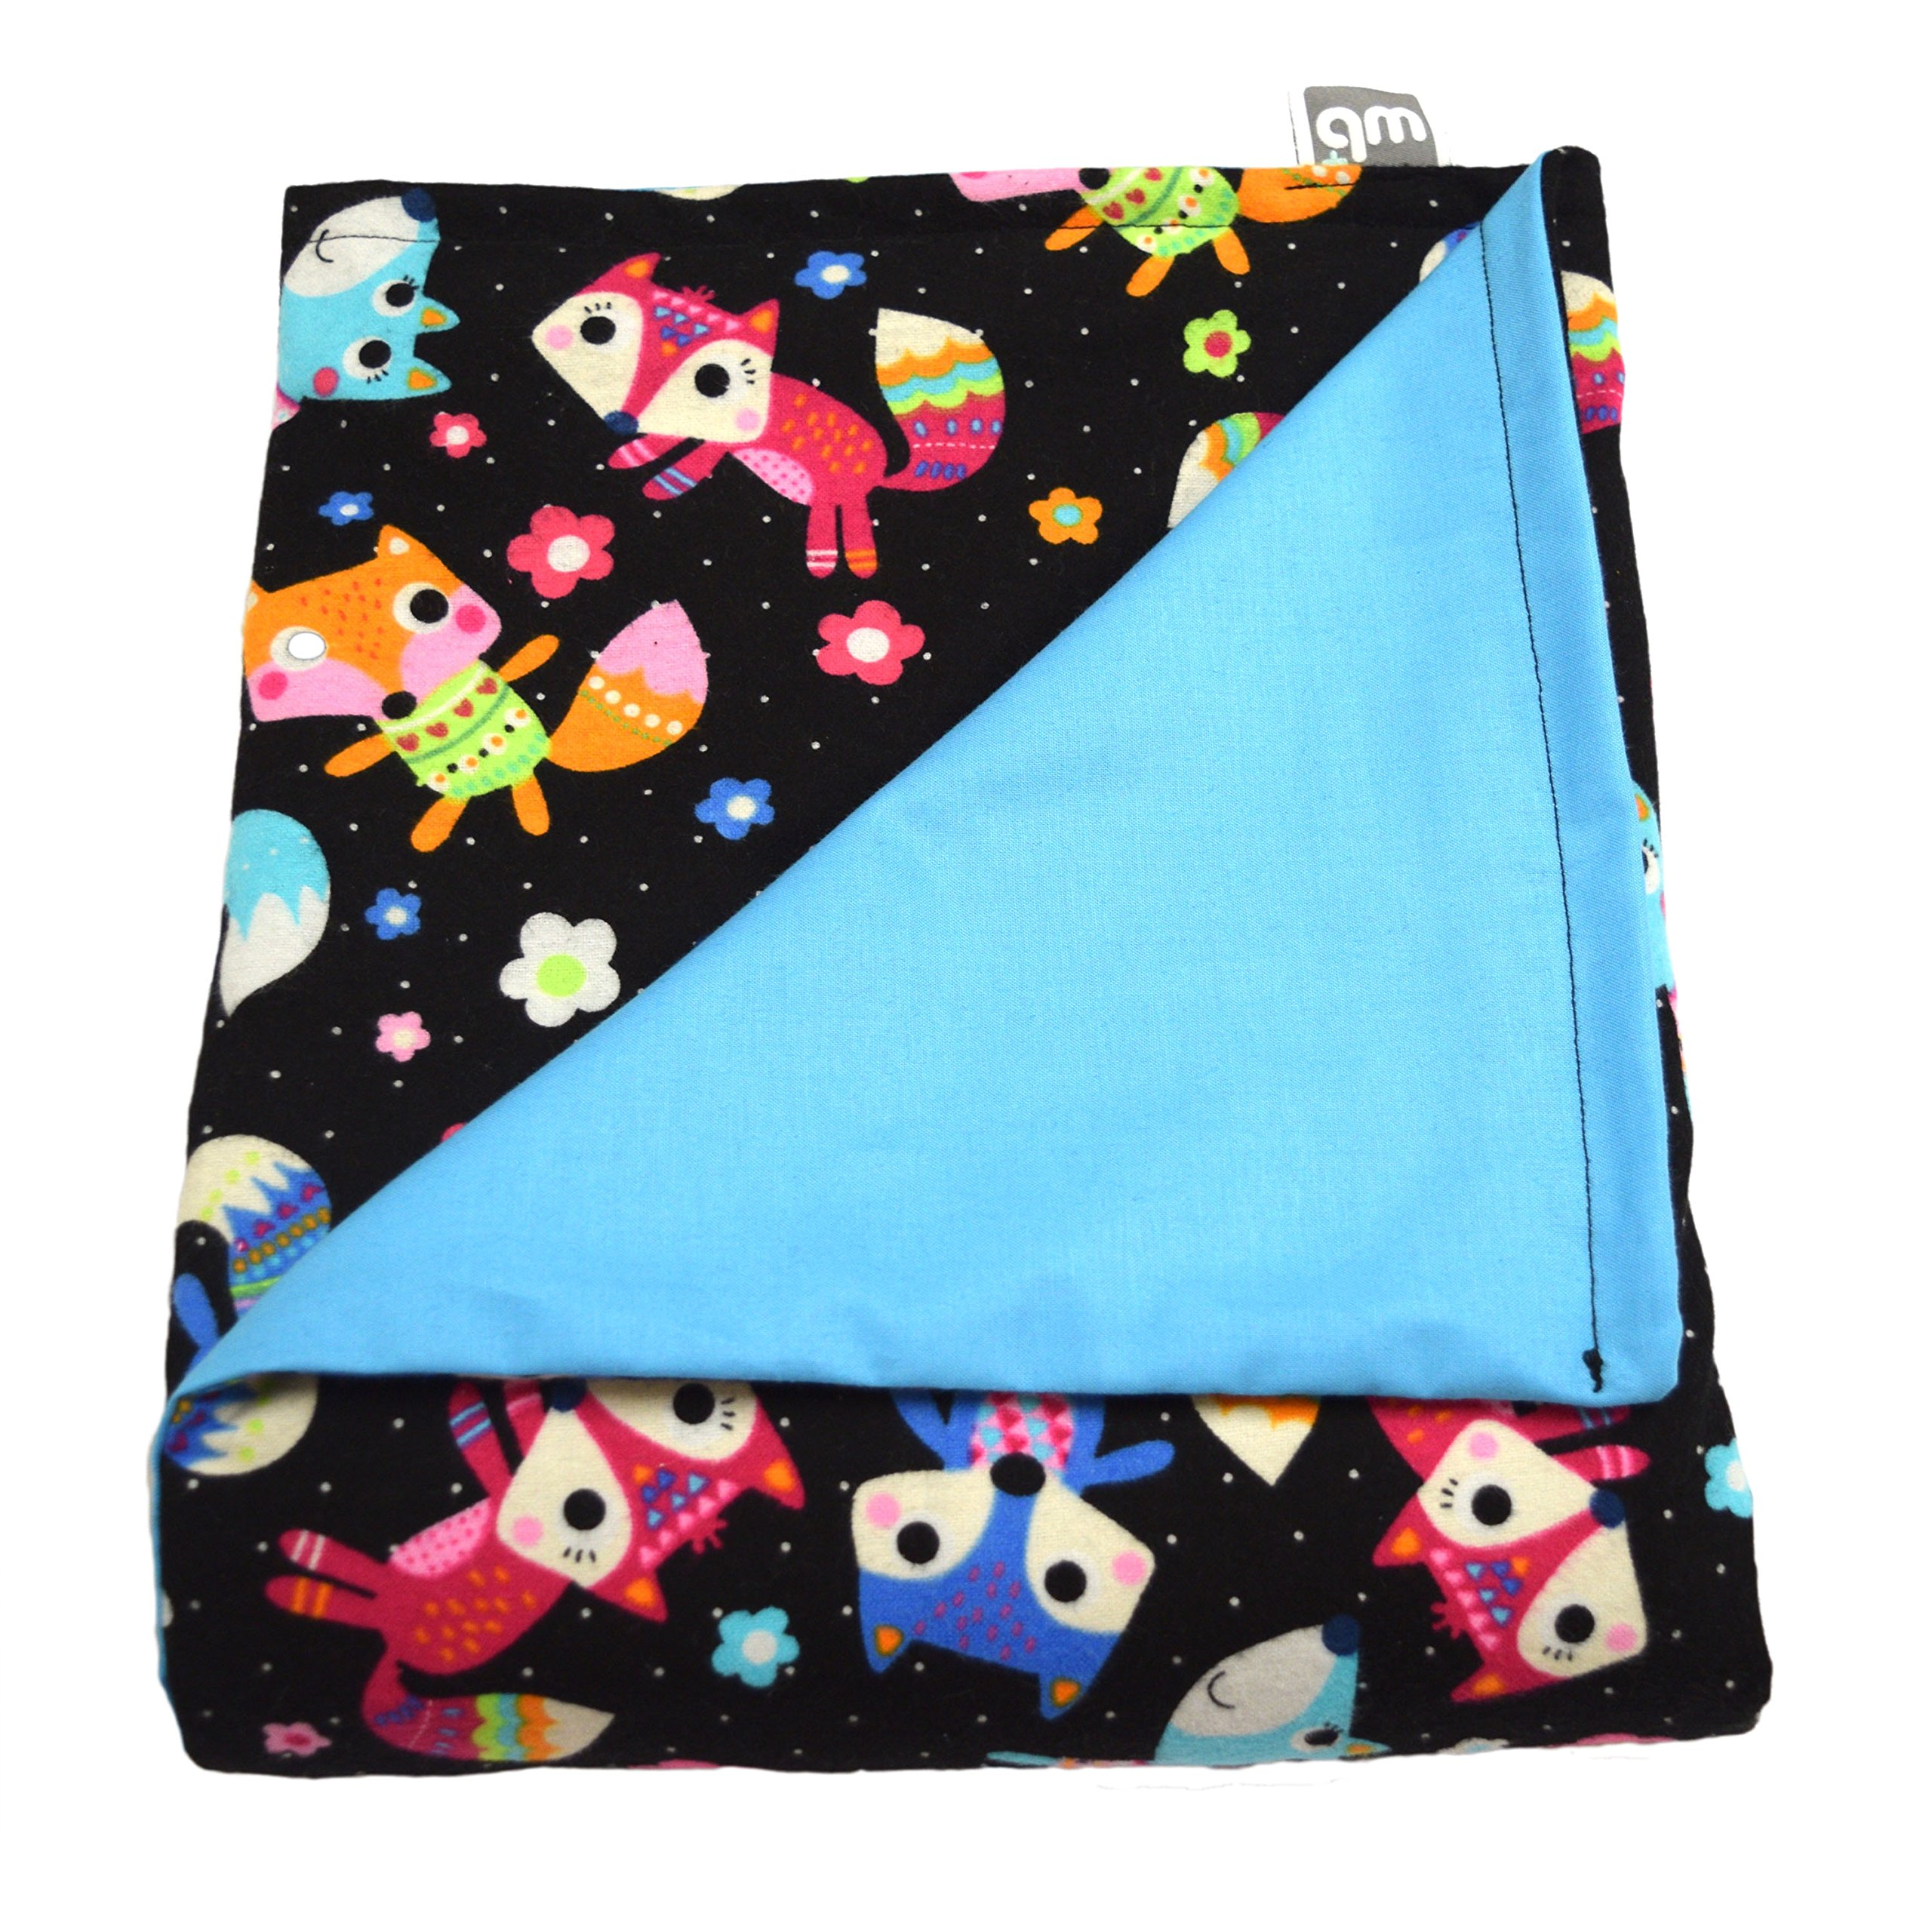 WEIGHTED BLANKETS PLUS LLC - MADE IN AMERICA - CHILD DELUXE SMALL WEIGHTED BLANKET - FOX - COTTON/FLANNEL (52'' L x 40'' W) 7lb HIGH PRESSURE.